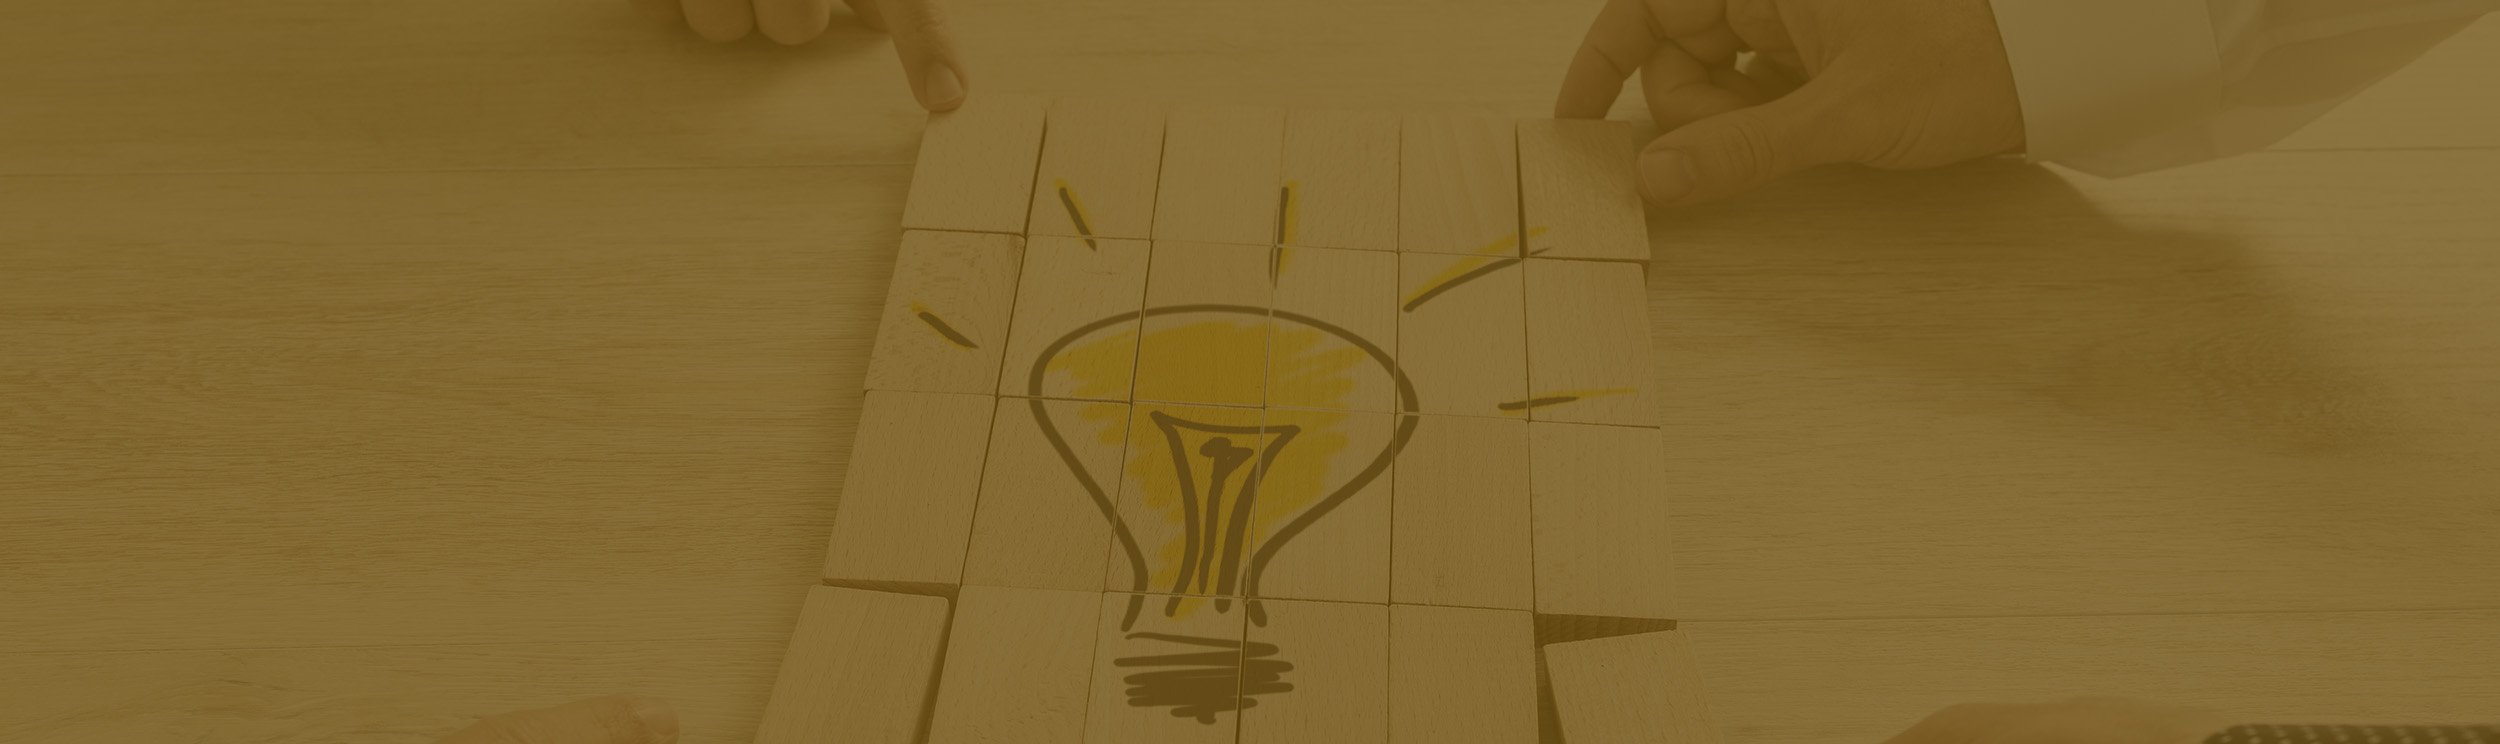 How to turn a great idea into a successful business: part 3